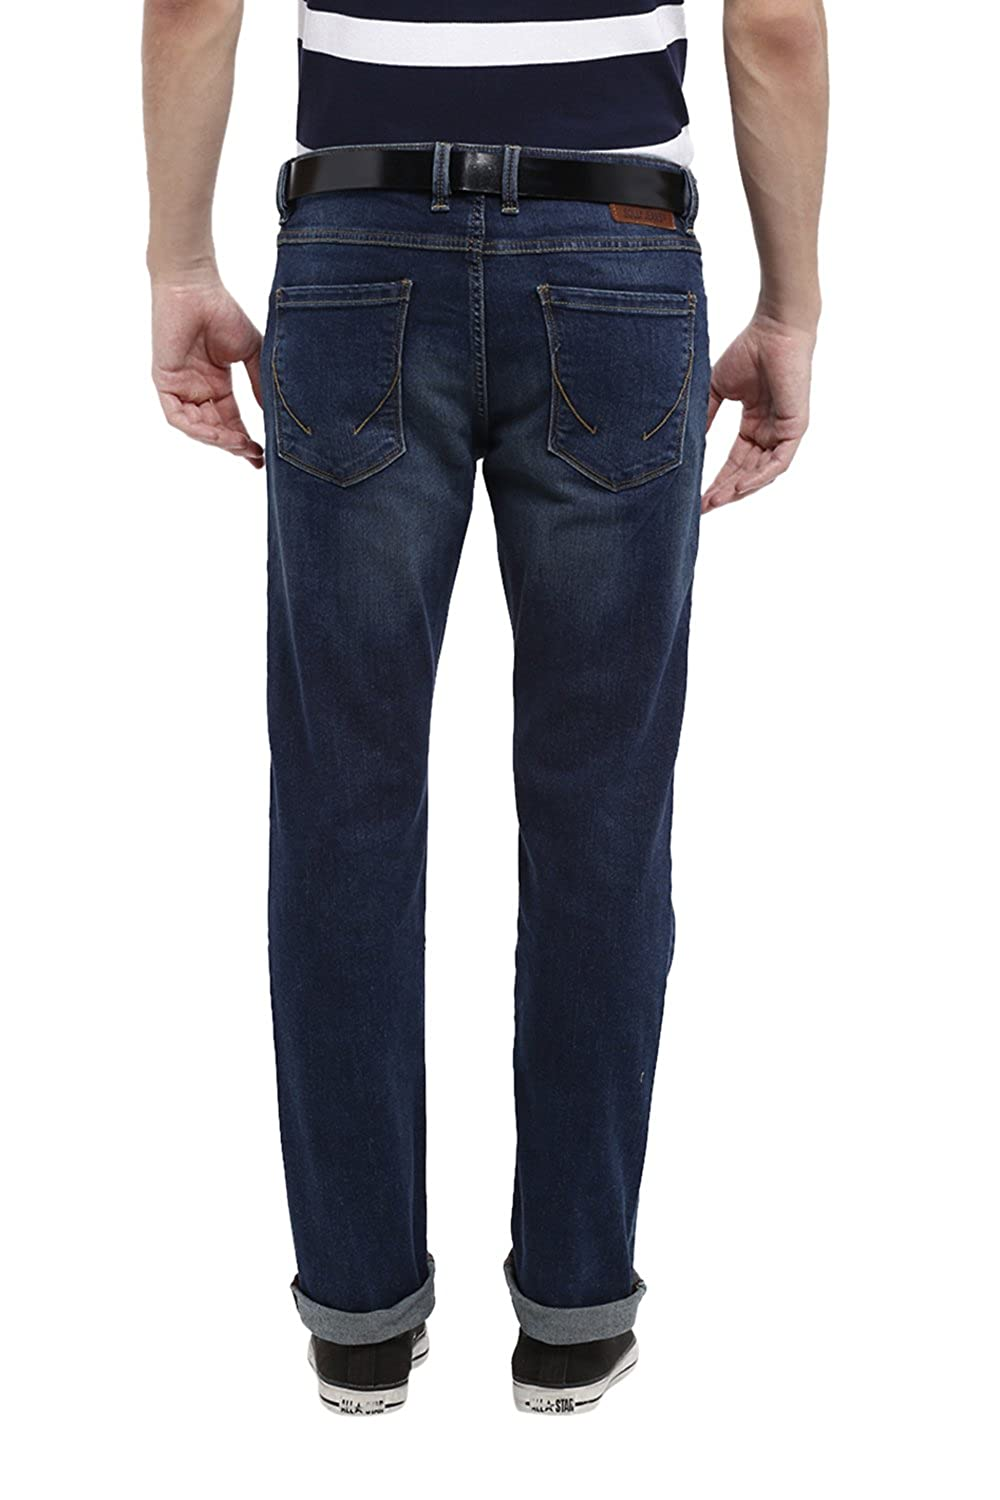 Allen Solly Men's Low Waist Slim Jeans